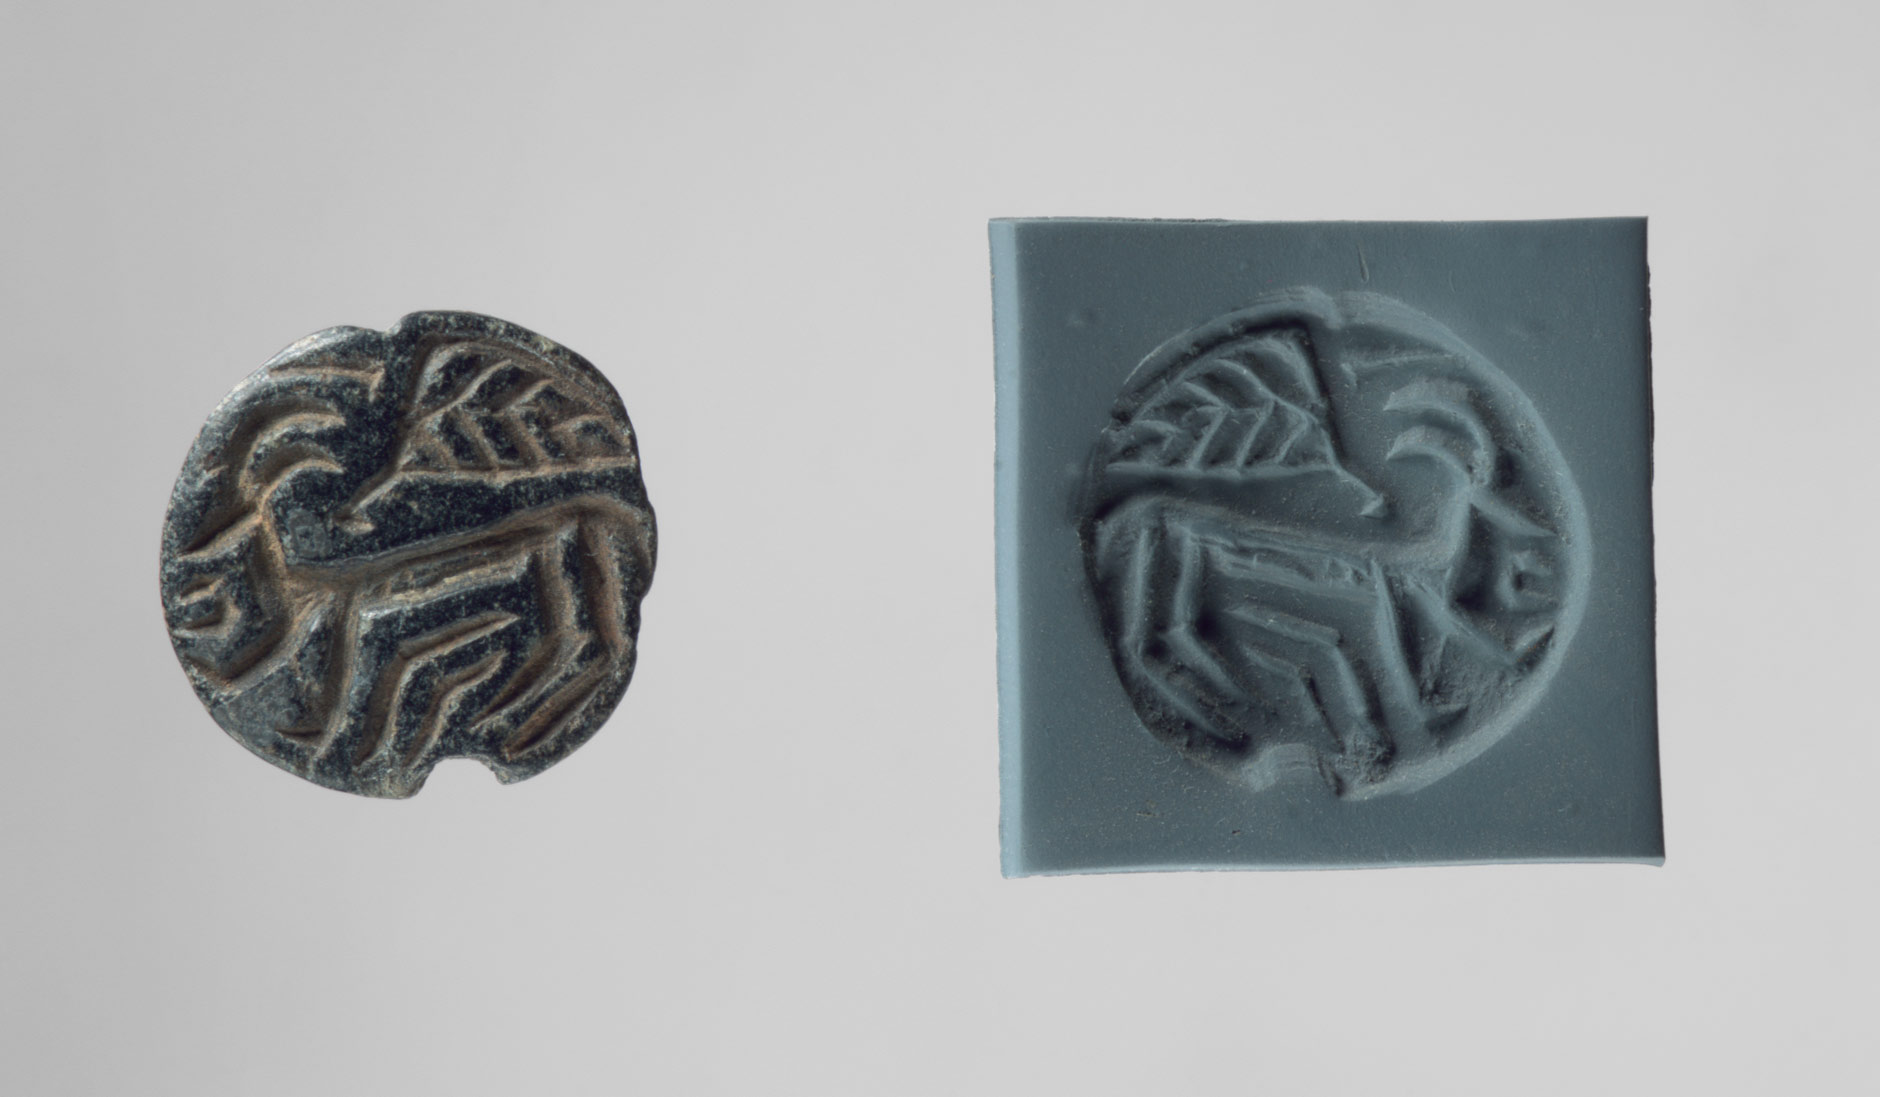 Stamp seal and modern impression: horned animal and bird